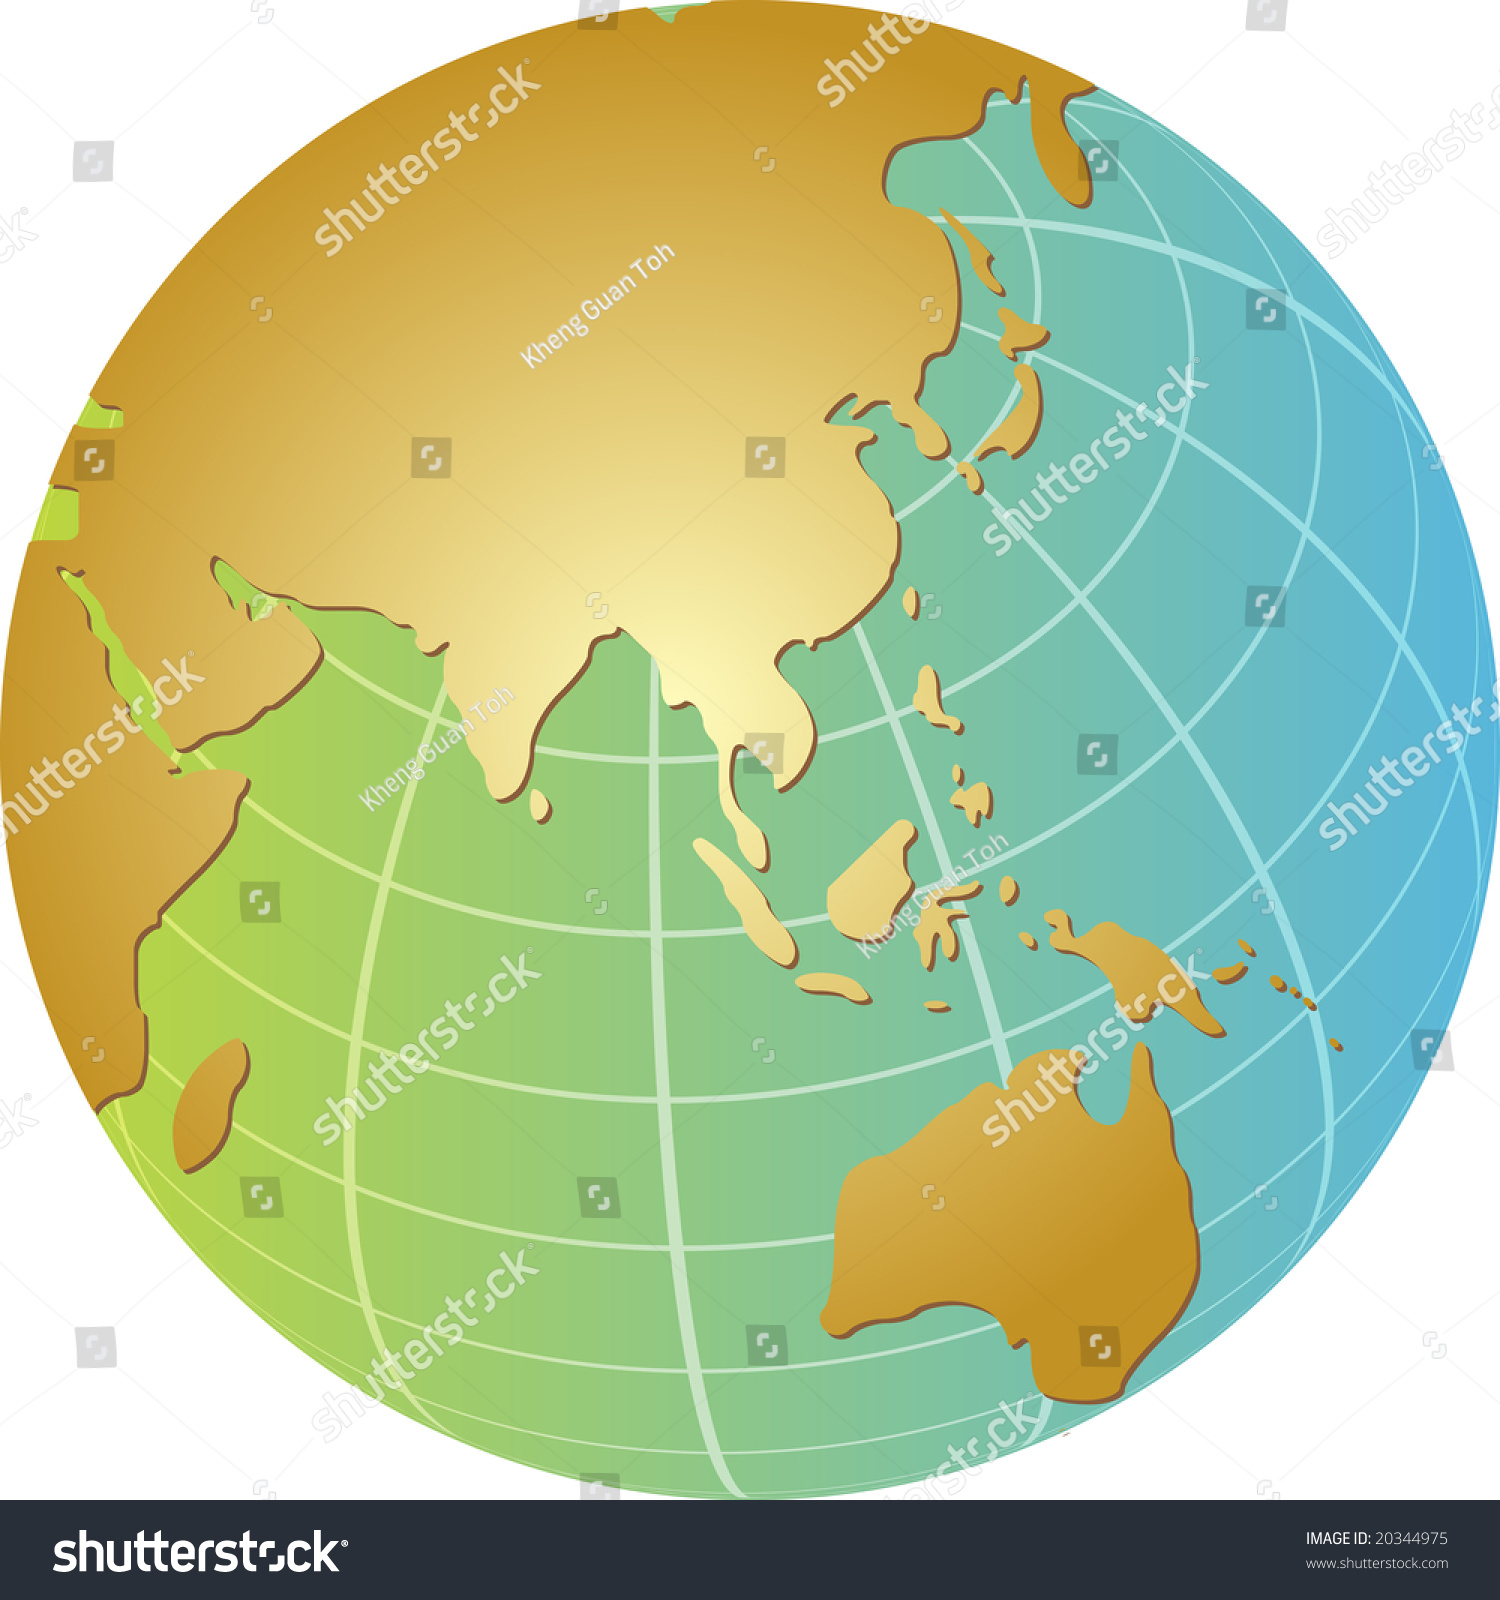 globe map illustration of the asia pacific